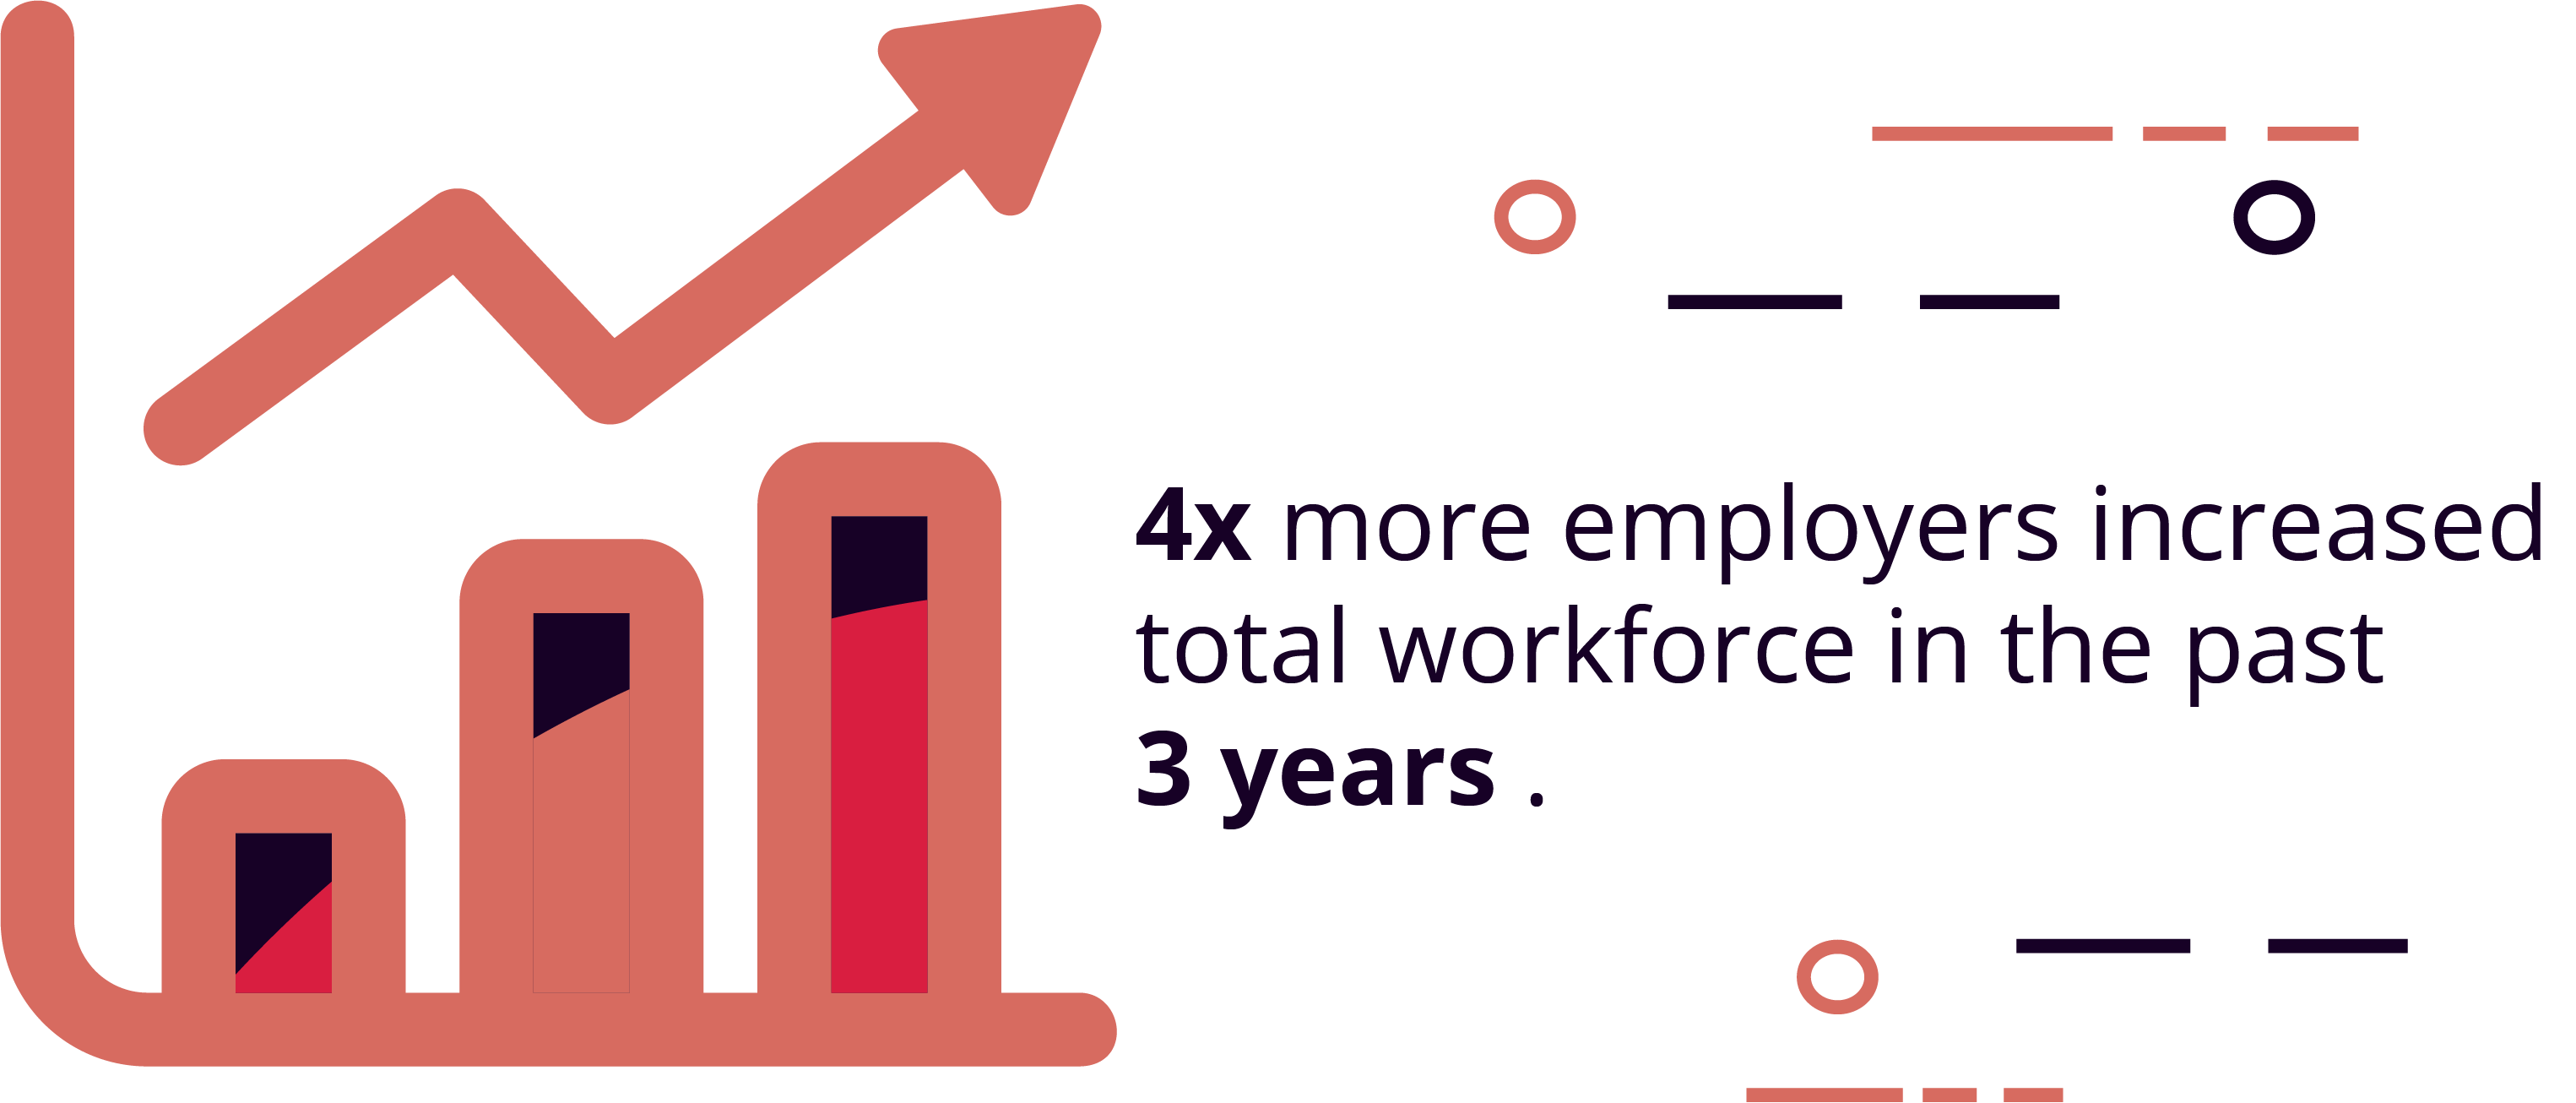 4 times more employers increased total workforce than decreased total workforce in the past 3 years